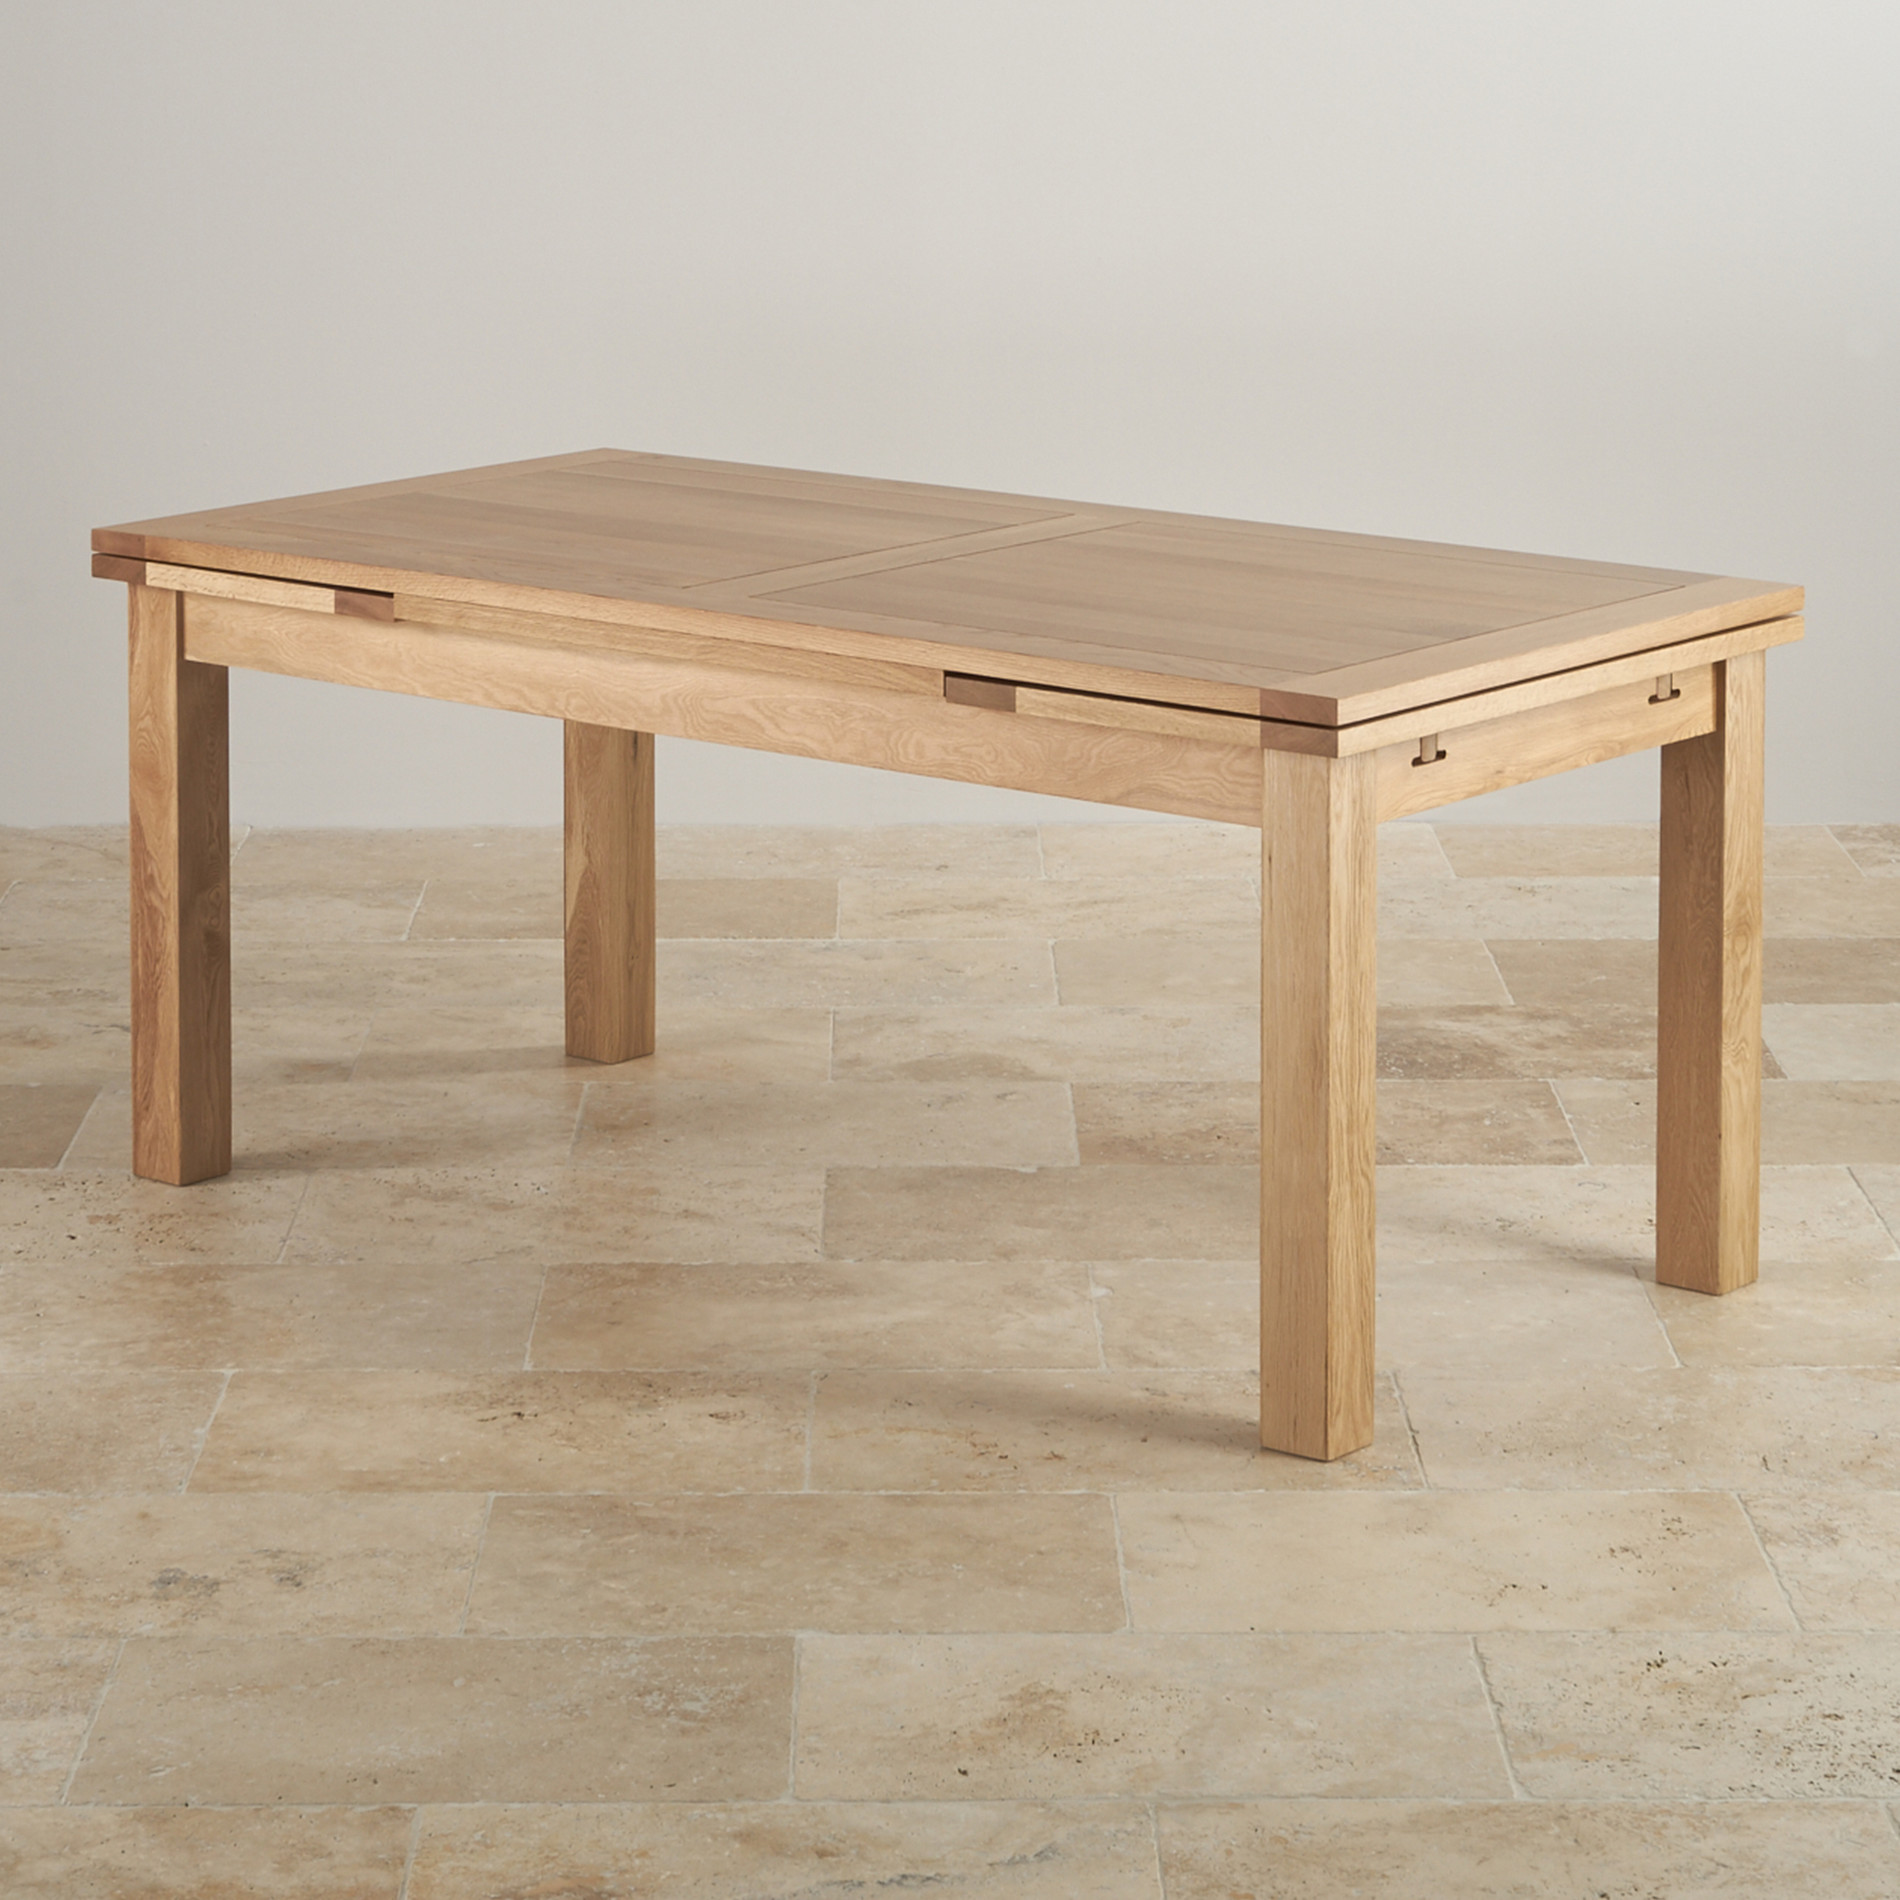 Extendable dining table in Dorset extendable in natural oak furniture country VYUYZMU